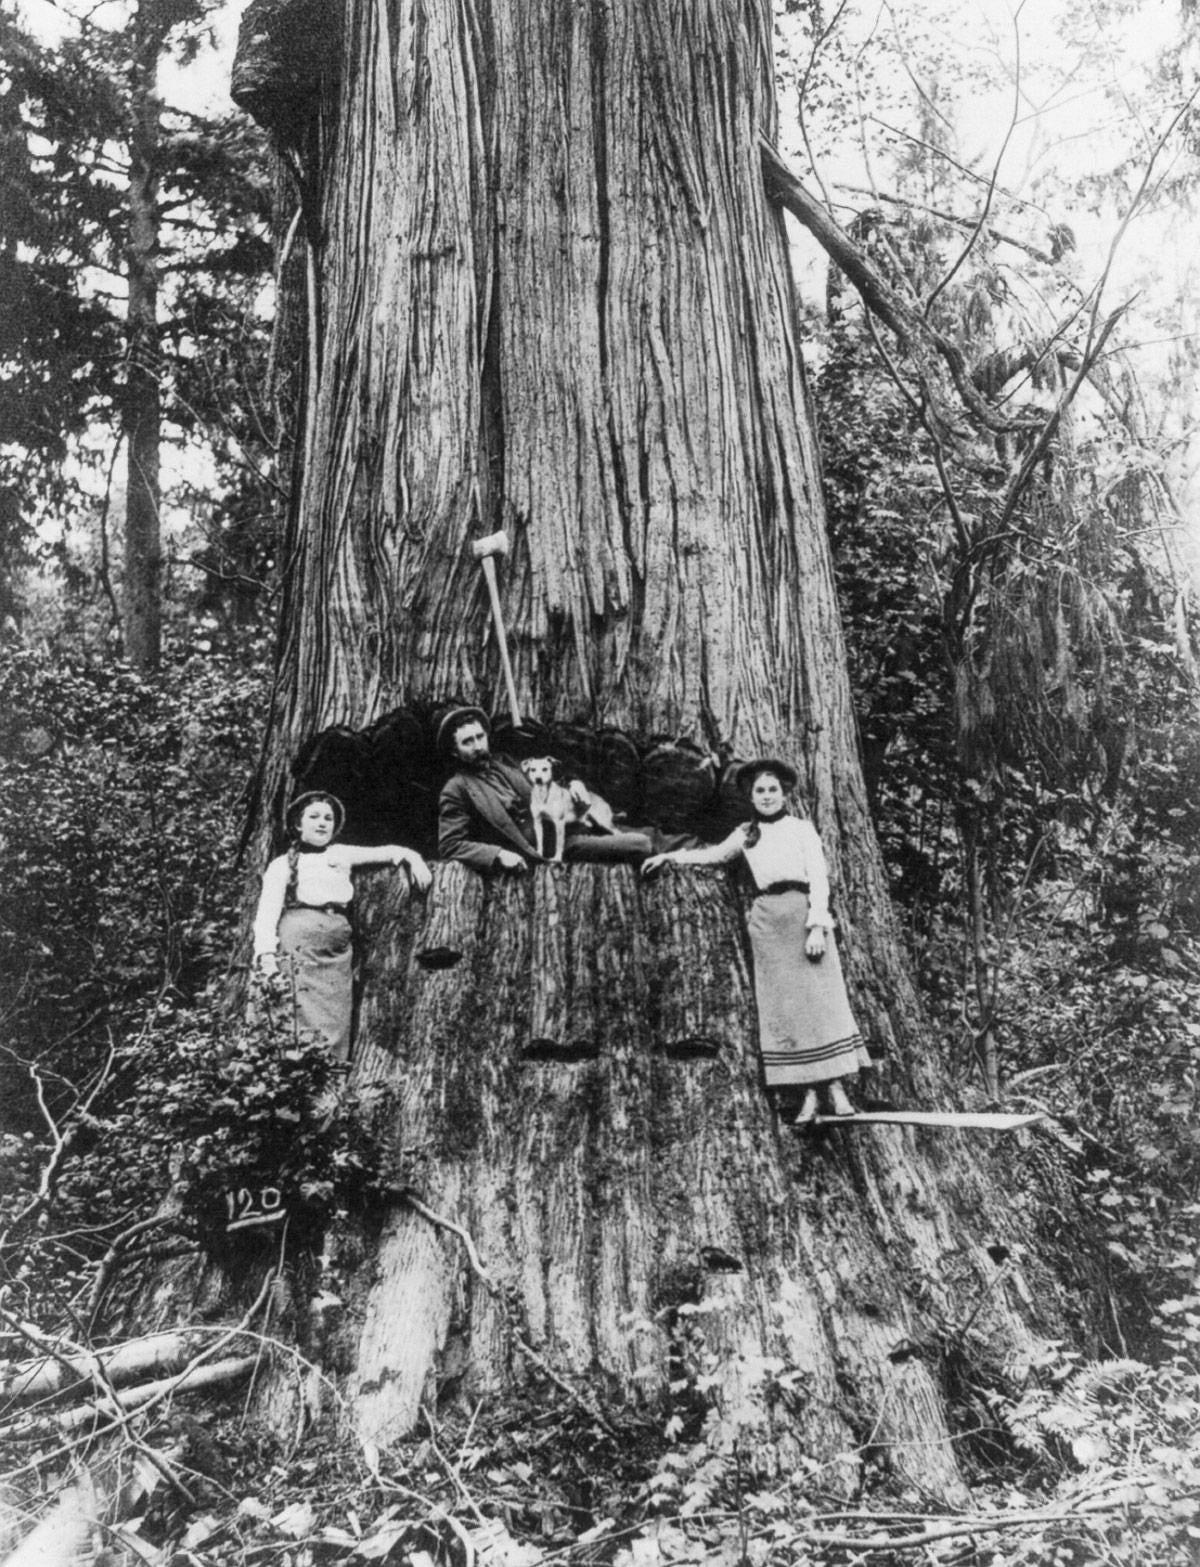 1905  A lumberjack and two women pose in front of a tree near Seattle, Washington.  Image: Library of Congress